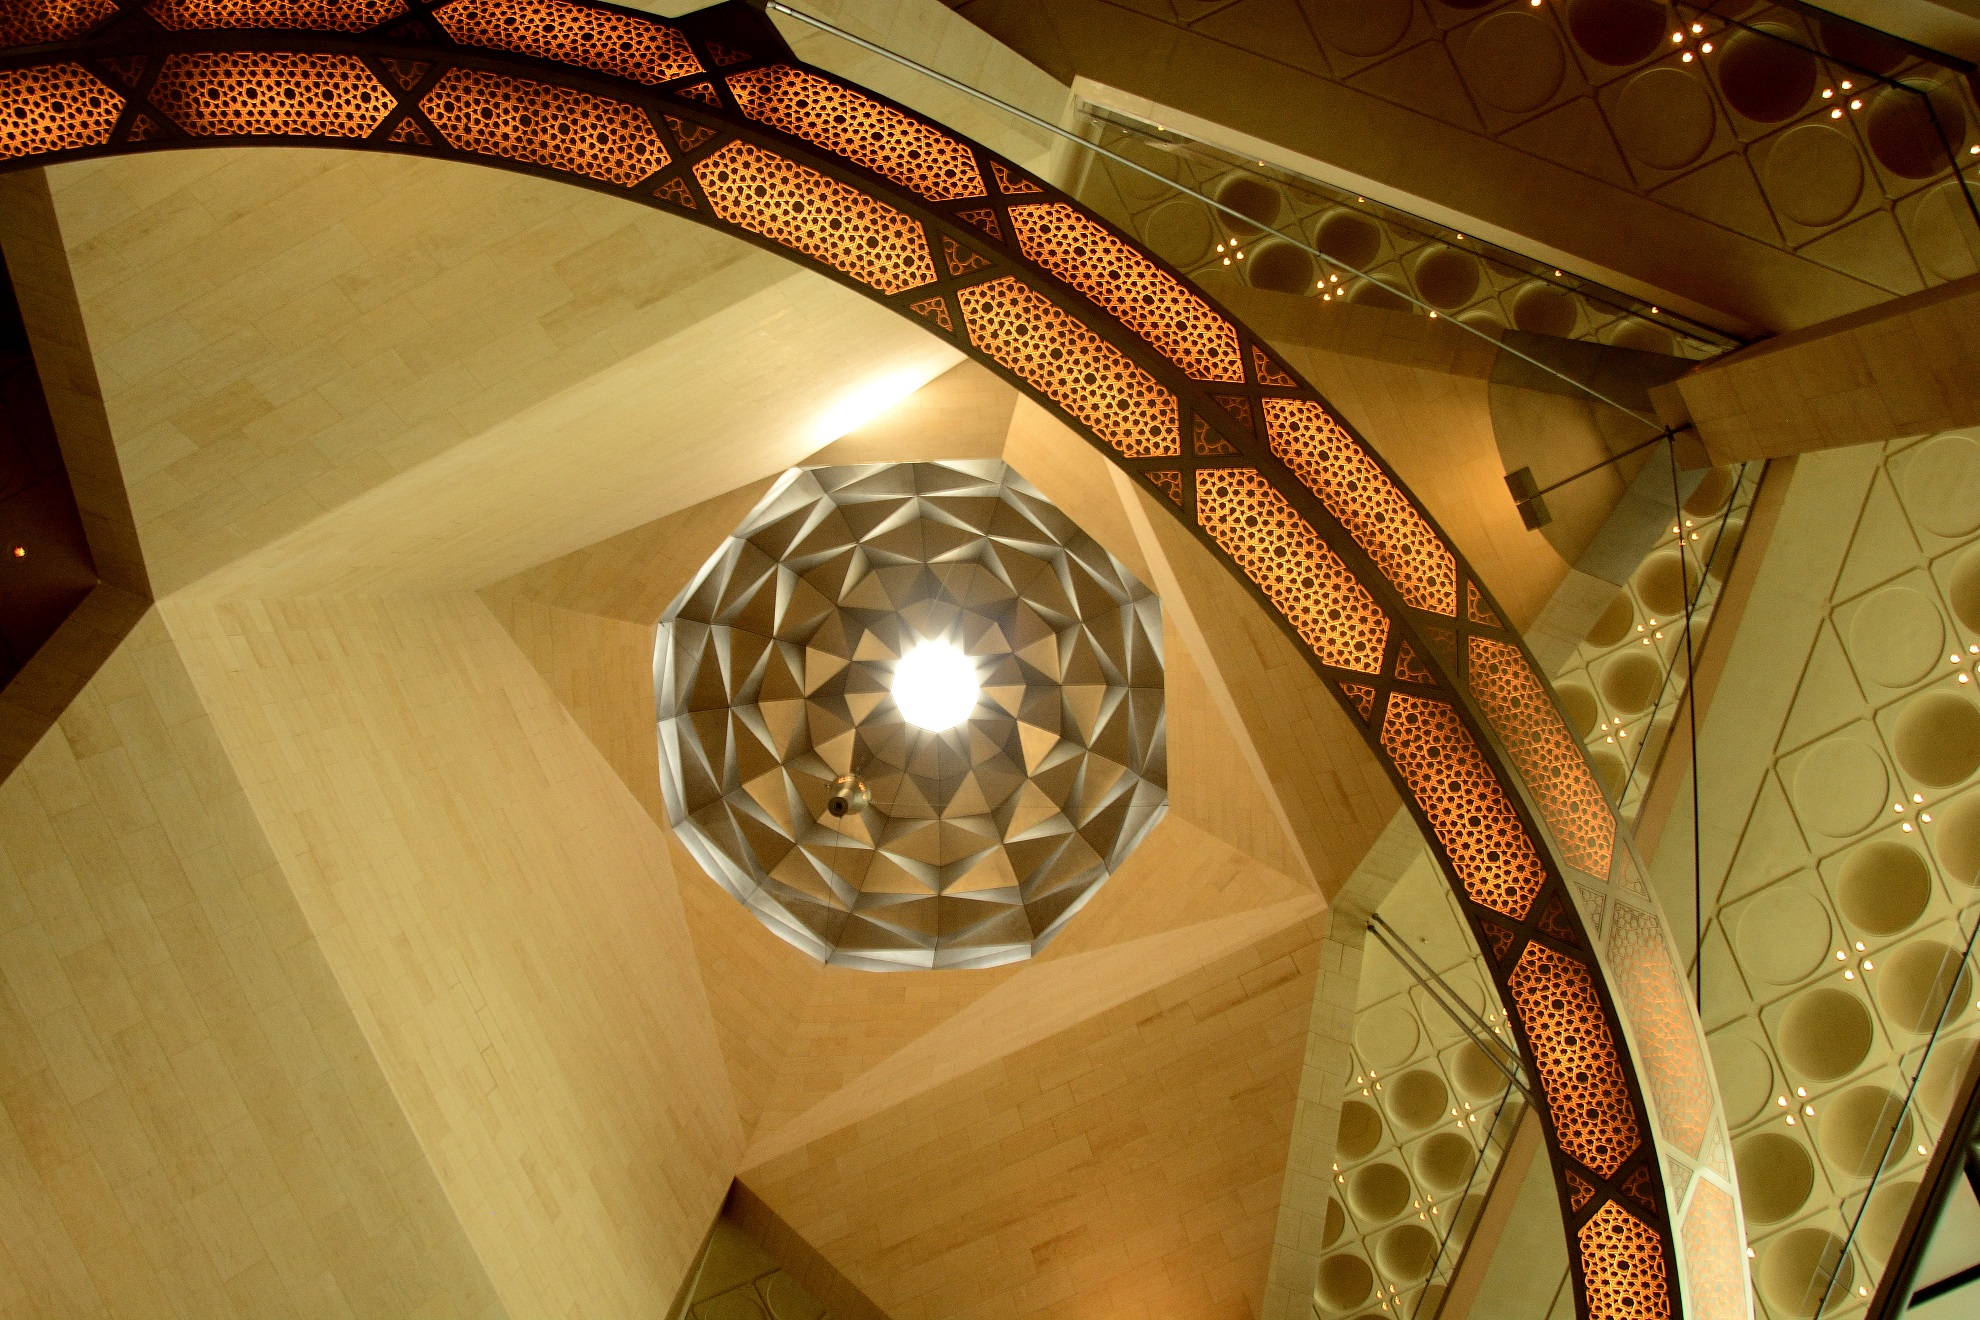 The dome of the museum rethinks ancient mosques